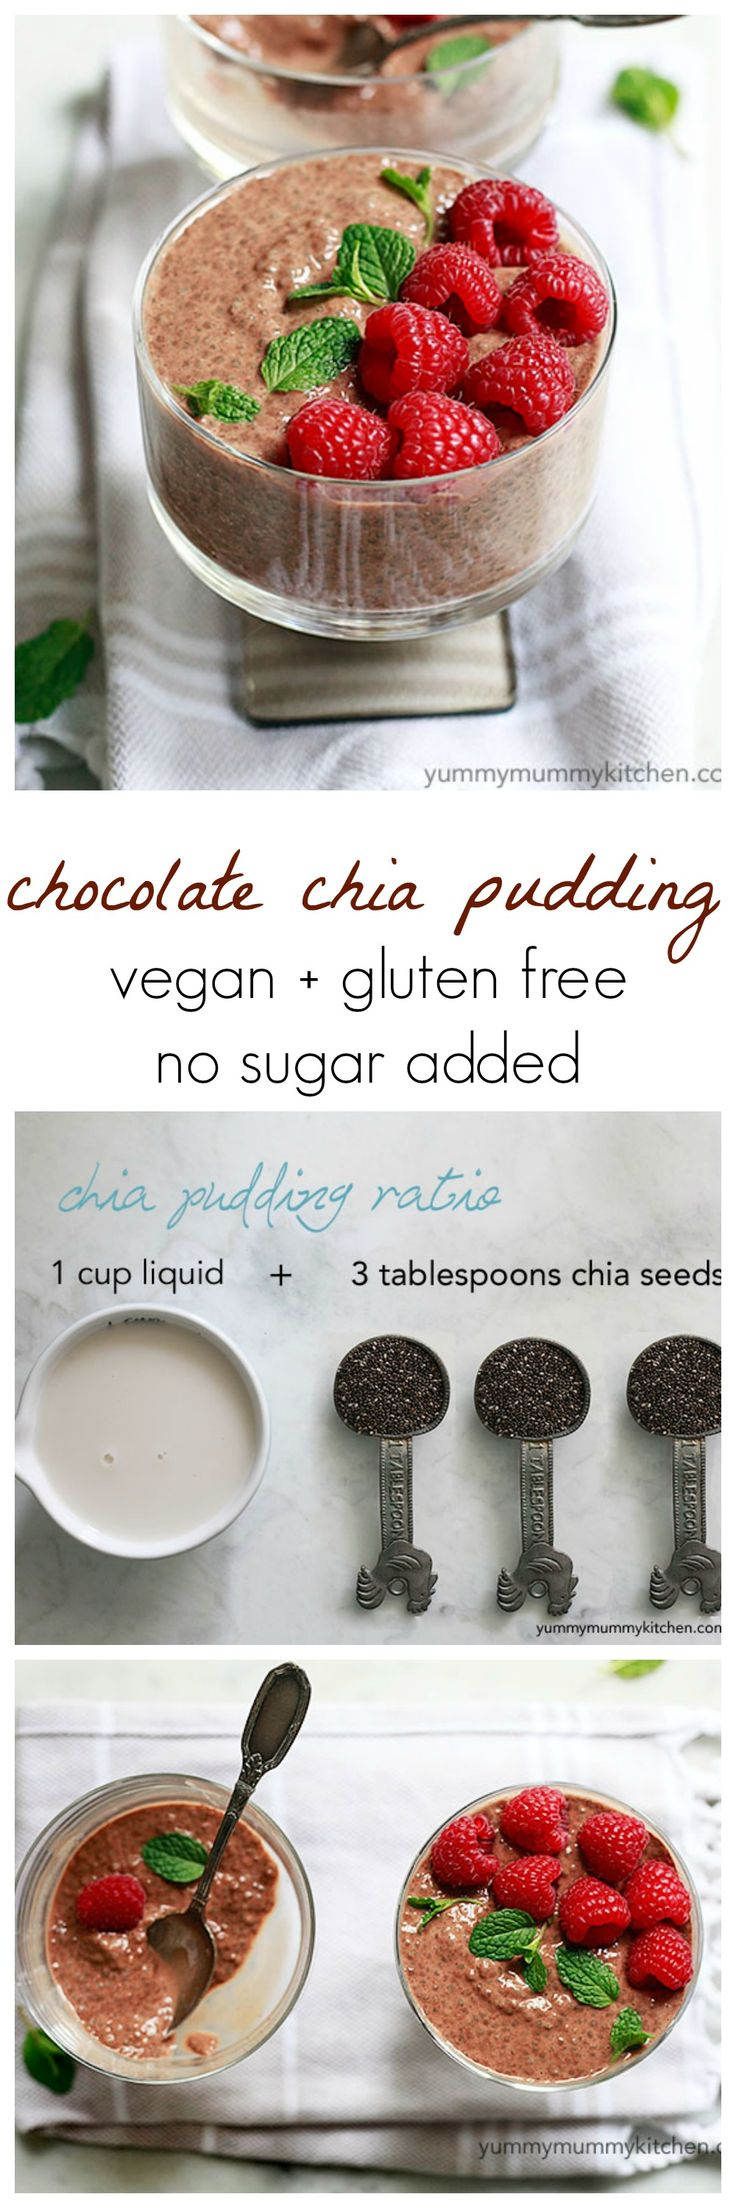 Cacao Chocolate Chia Pudding. This takes 1 minute to prepare and tastes like the best chocolate pudding. Only it's actually healthy!